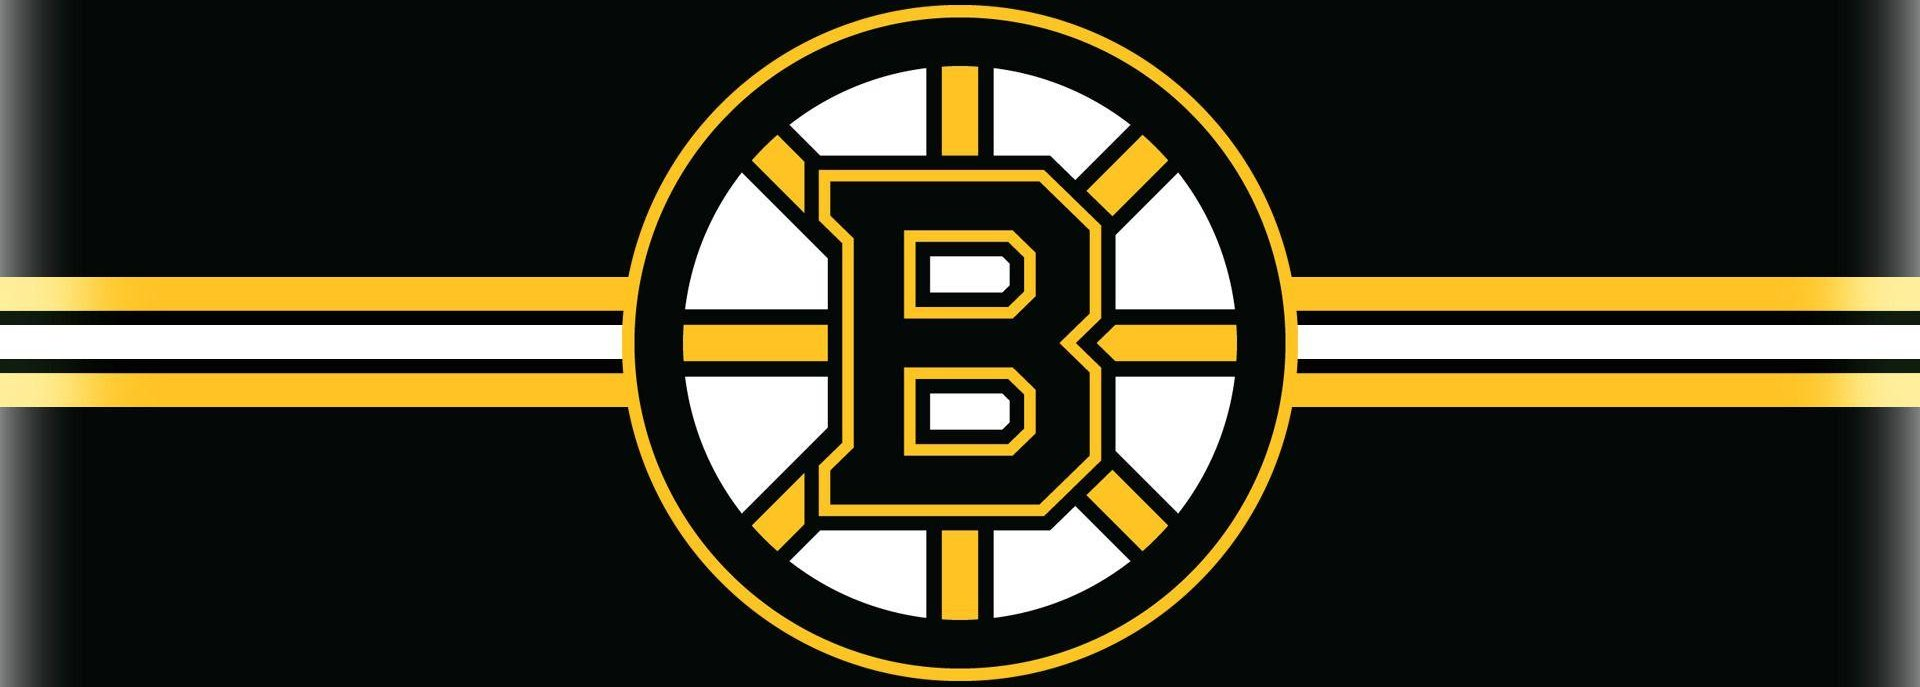 Boston Bruins 4K Background